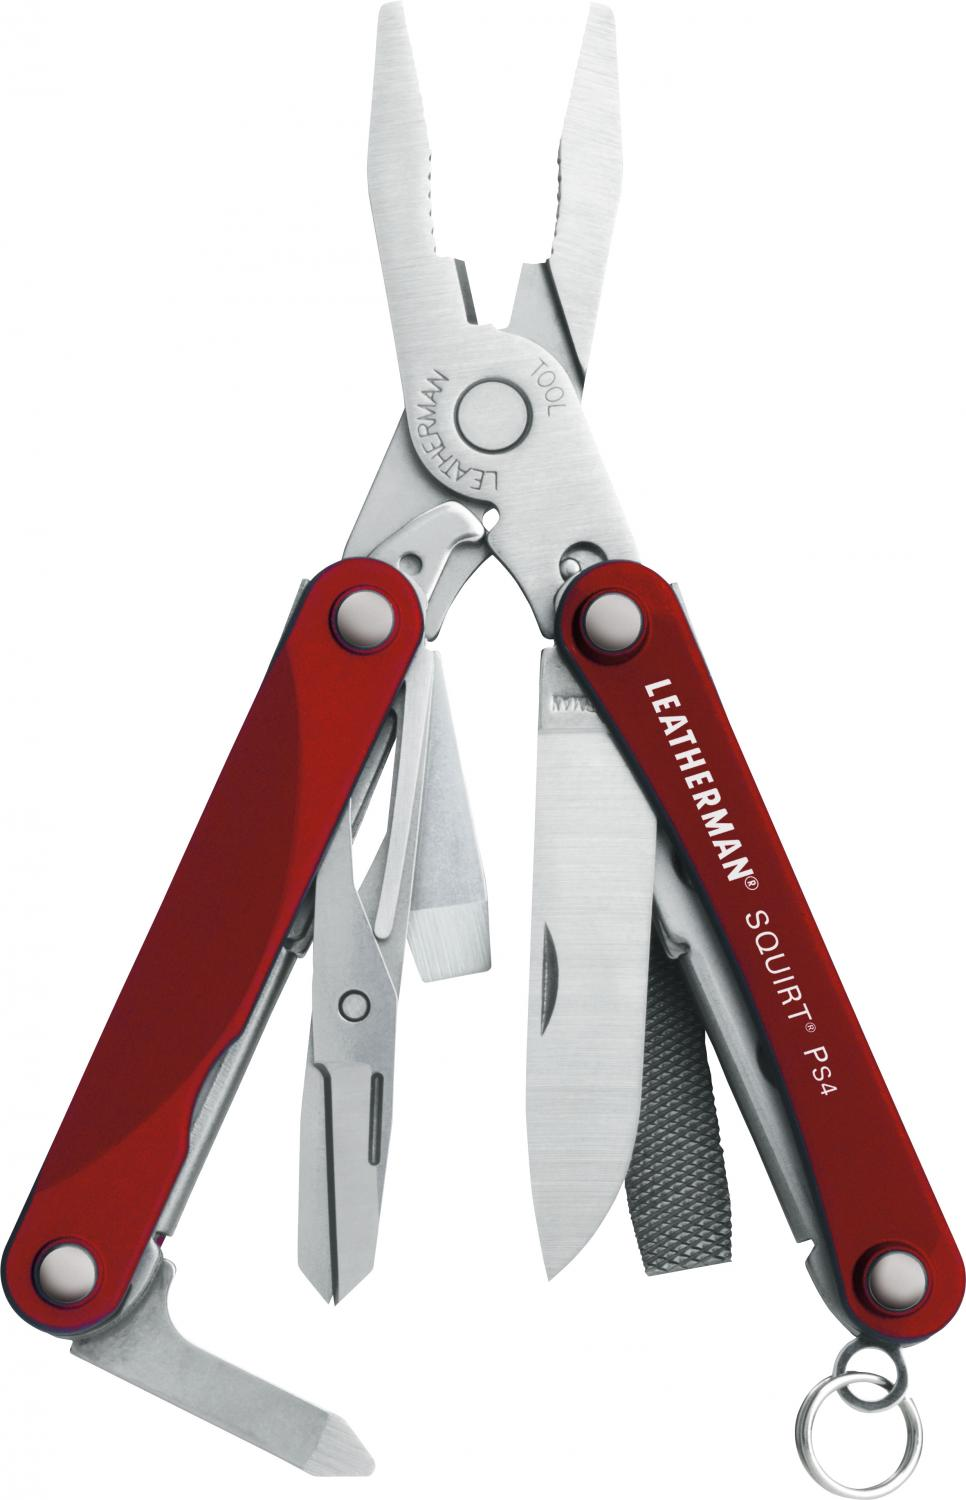 Leatherman Squirt PS4 Keychain Mini Multi-Tool, Red Aluminum Handles